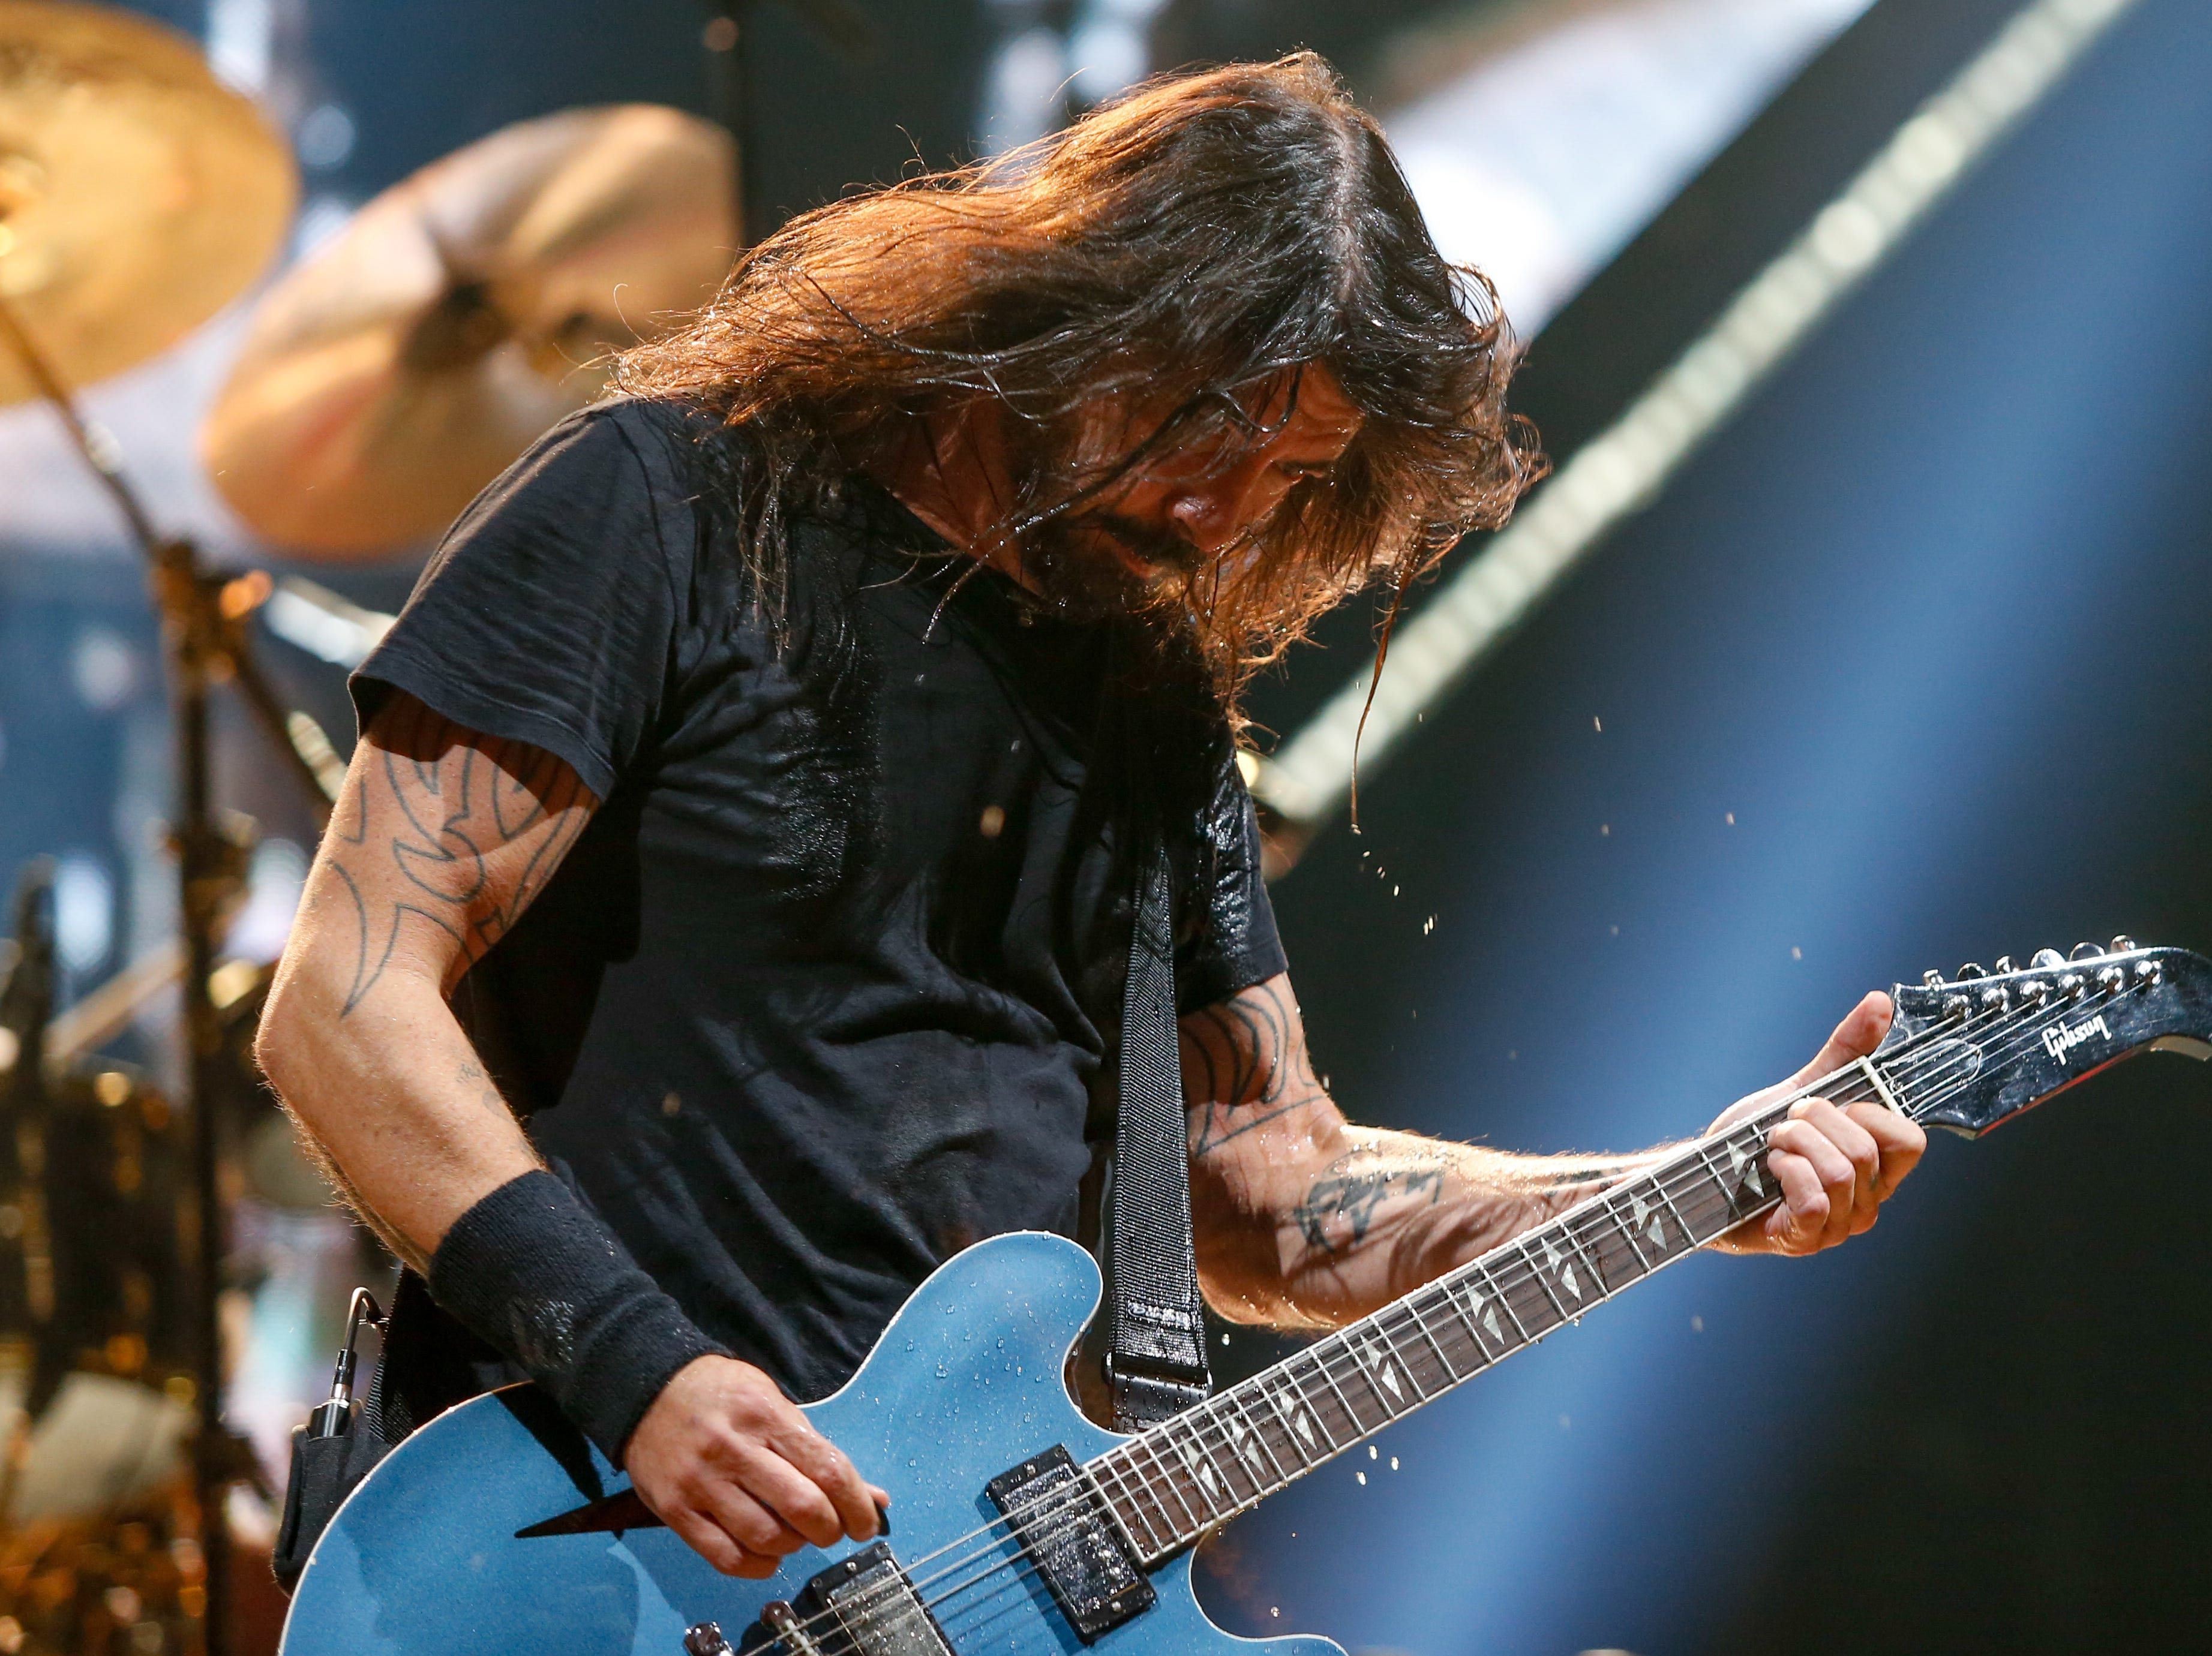 Foo Fighters frontman Dave Grohl recalled for the crowd the band's 24-year history of playing Detroit venues, from Cobo Hall to Joe Louis Arena to Little Caesars Arena. He joked the band's next Detroit gig would be the basement of Saint Andrews Hall.